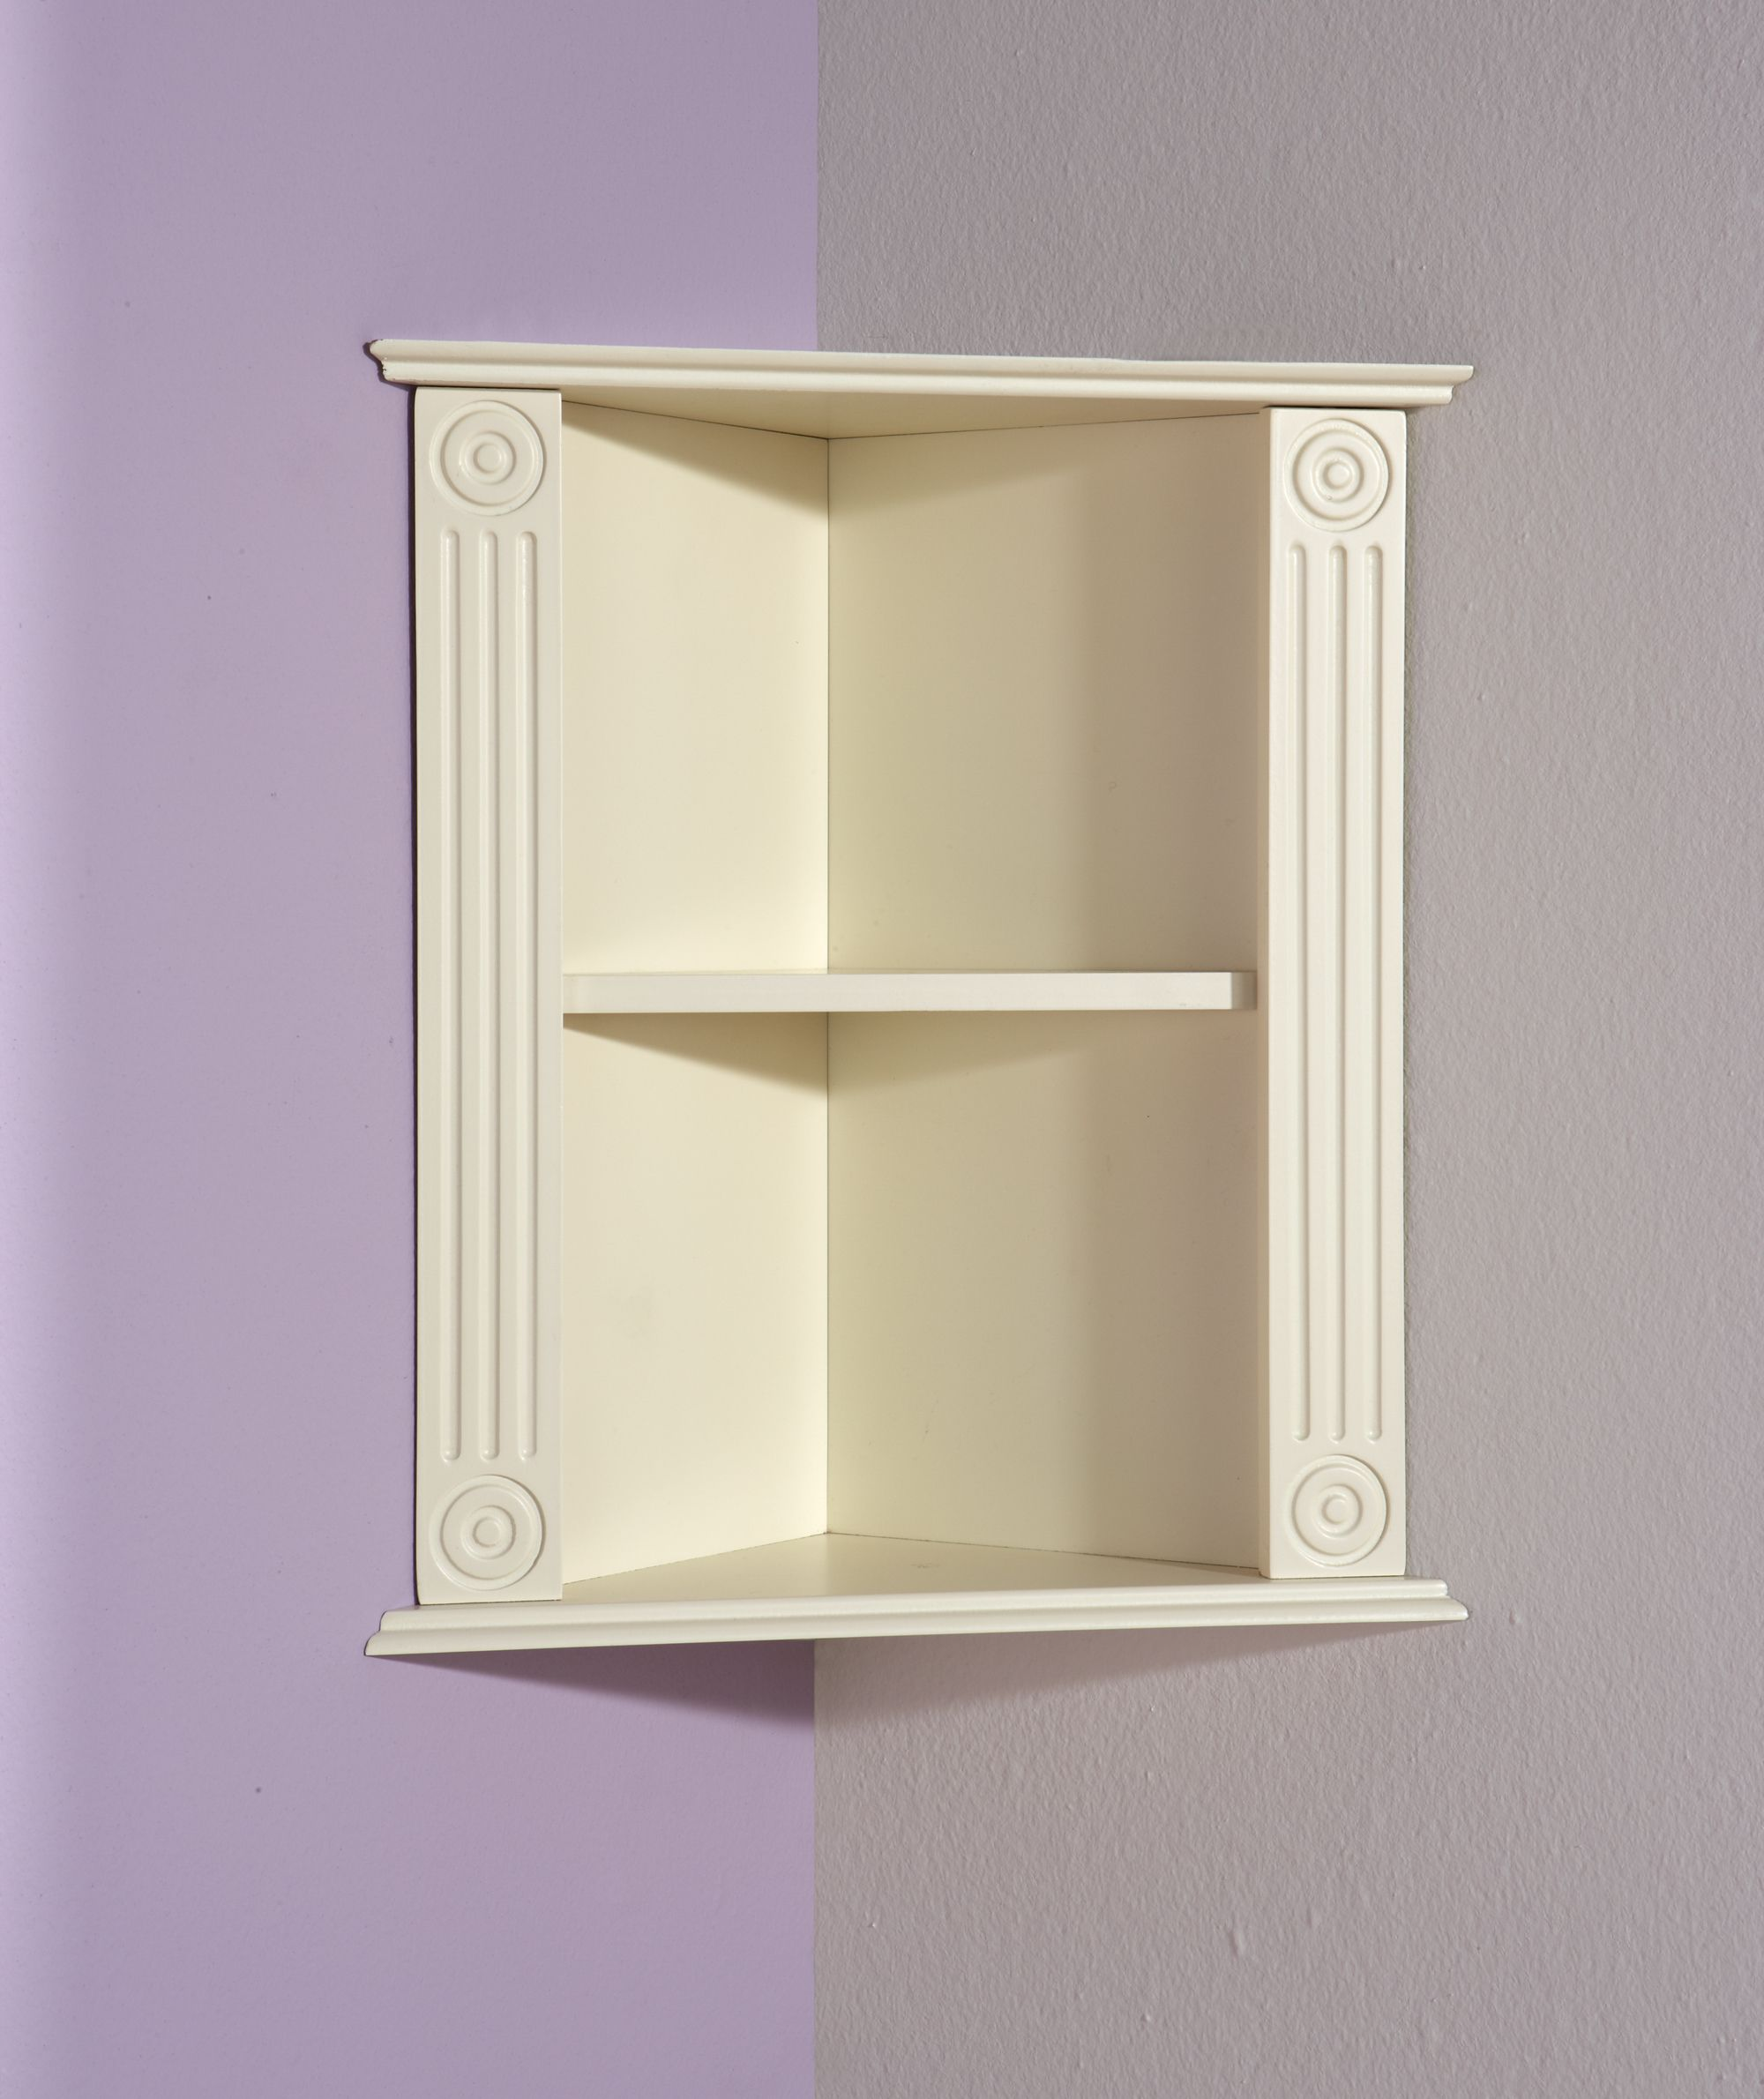 Corner Wall Shelf Unit Wall Design Wall Shelves Decorating Ideas Addison Corner Wall